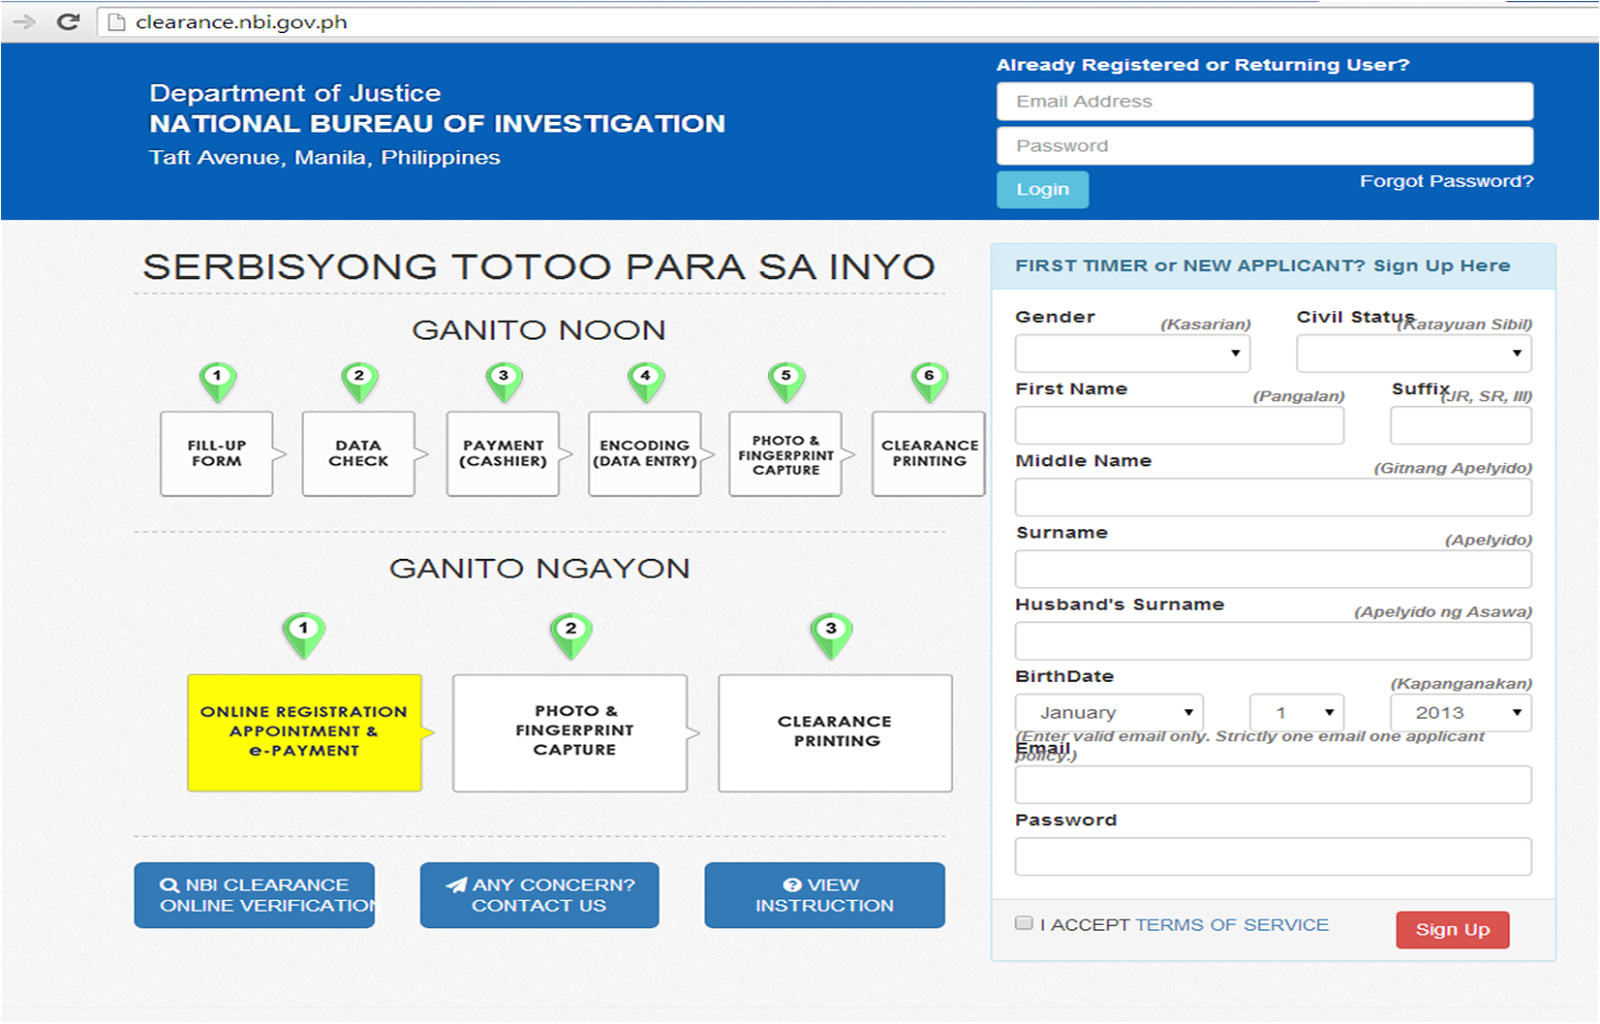 2017 step by step process how to get nbi clearance using the now the national bureau of investigation has upgraded their system to make it easier and more convenient for those who needed to secure nbi clearance even malvernweather Choice Image